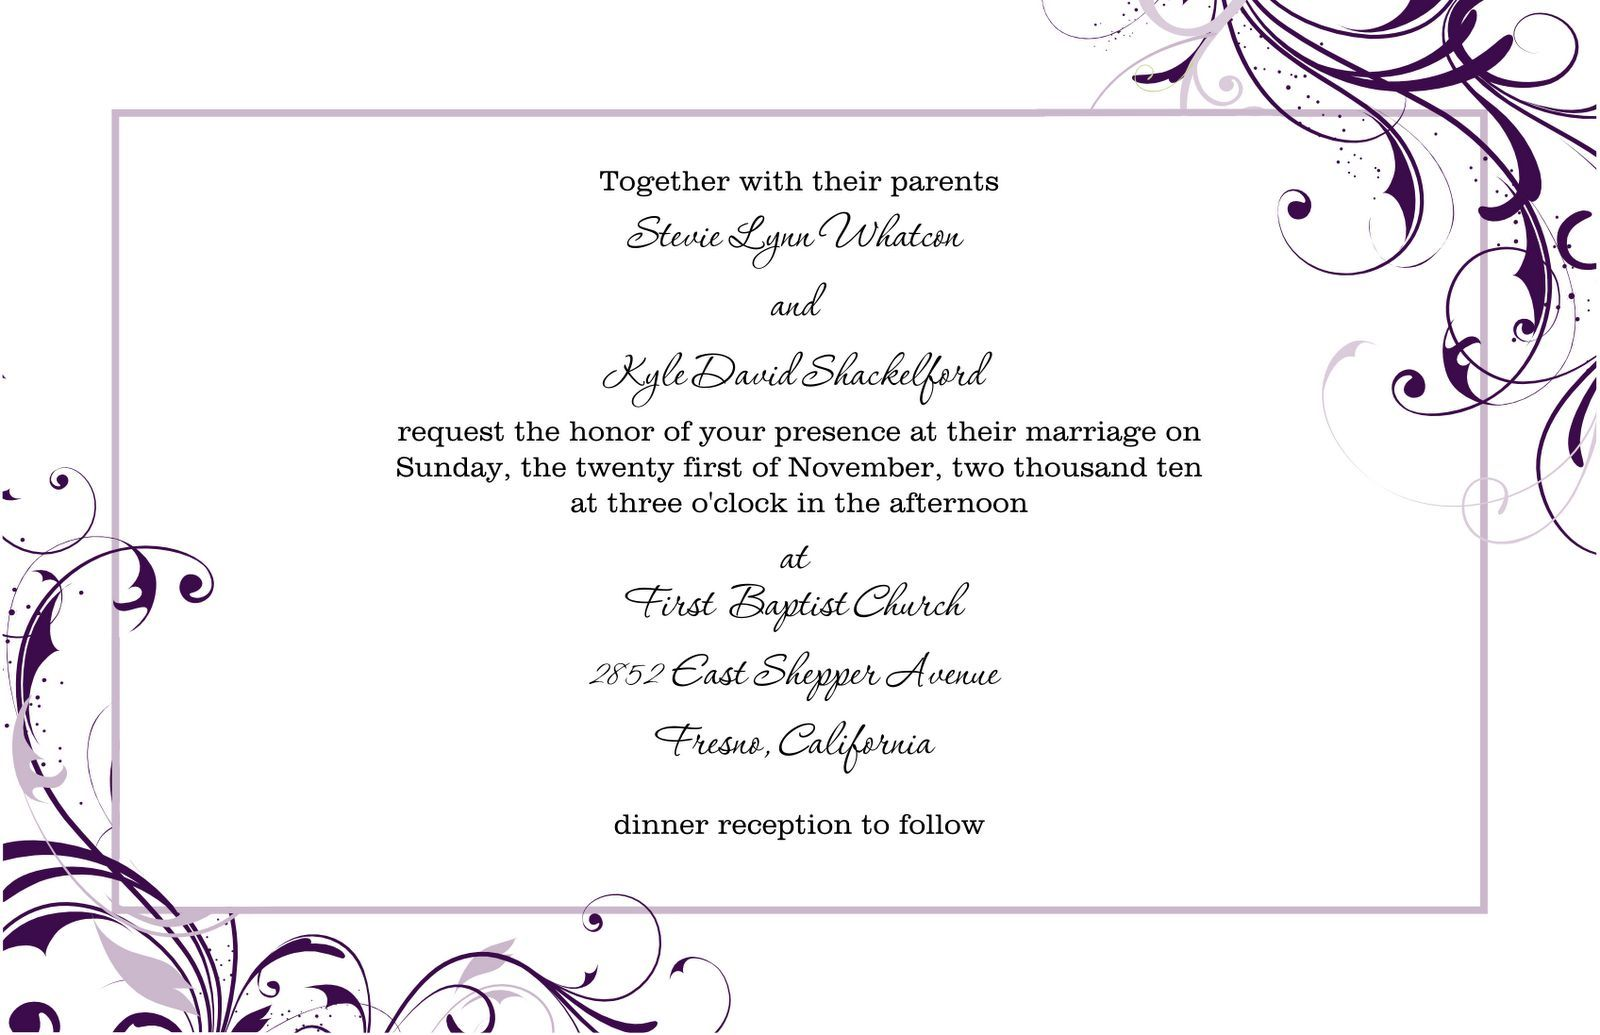 Free Blank Wedding Invitation Templates For Microsoft Word Wedding - Wedding invitation templates: free templates for wedding invitations